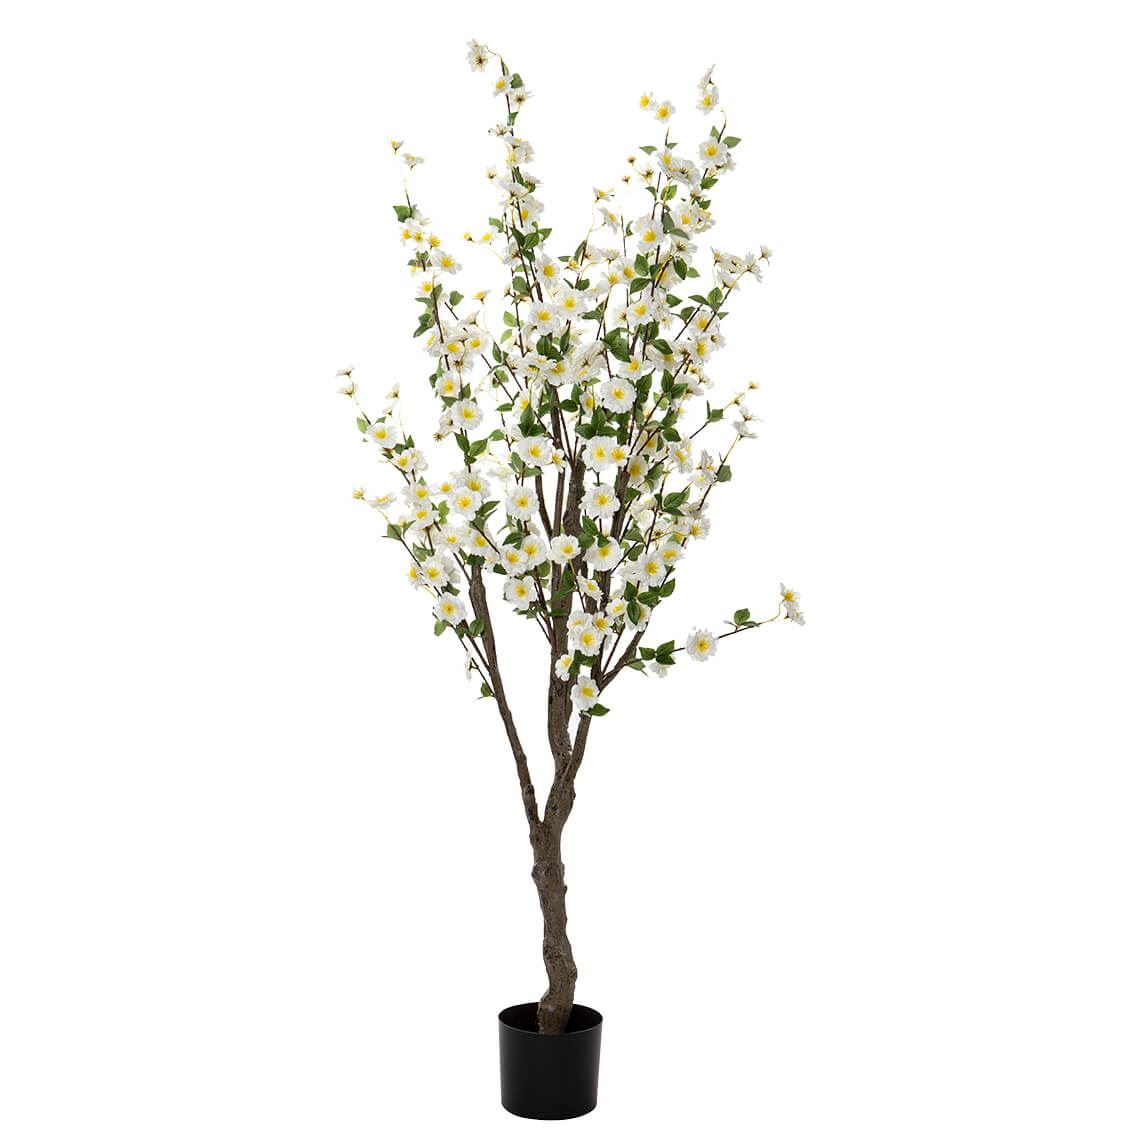 Blossom Tree Size W 70cm x D 70cm x H 150cm in White Freedom